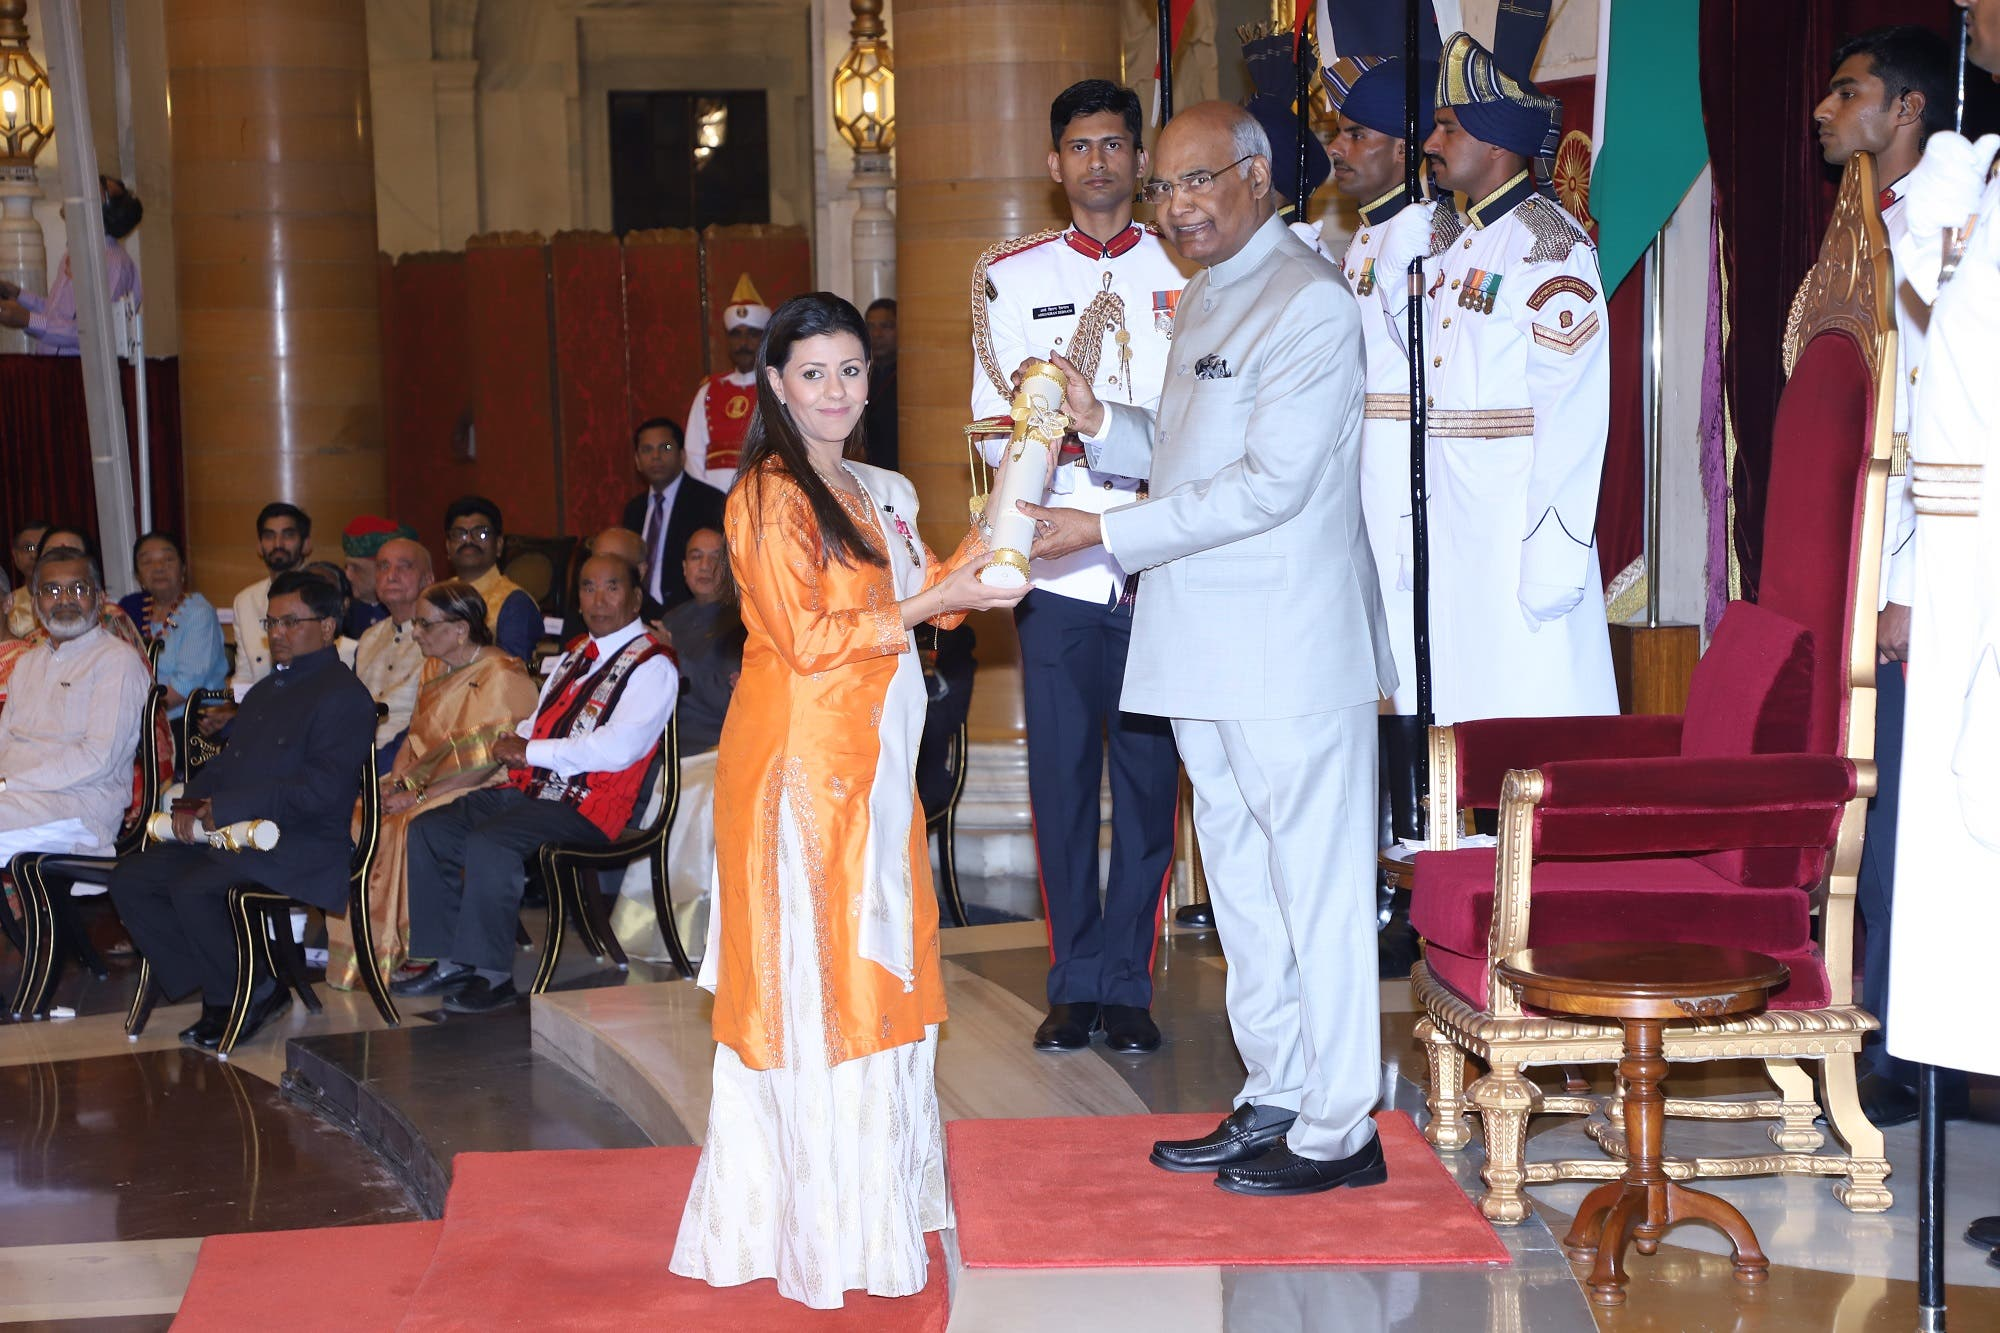 Nouf Marwaai was awarded India's leading civilian honor, Padma Shree, on 15 August 2018. (Supplied)